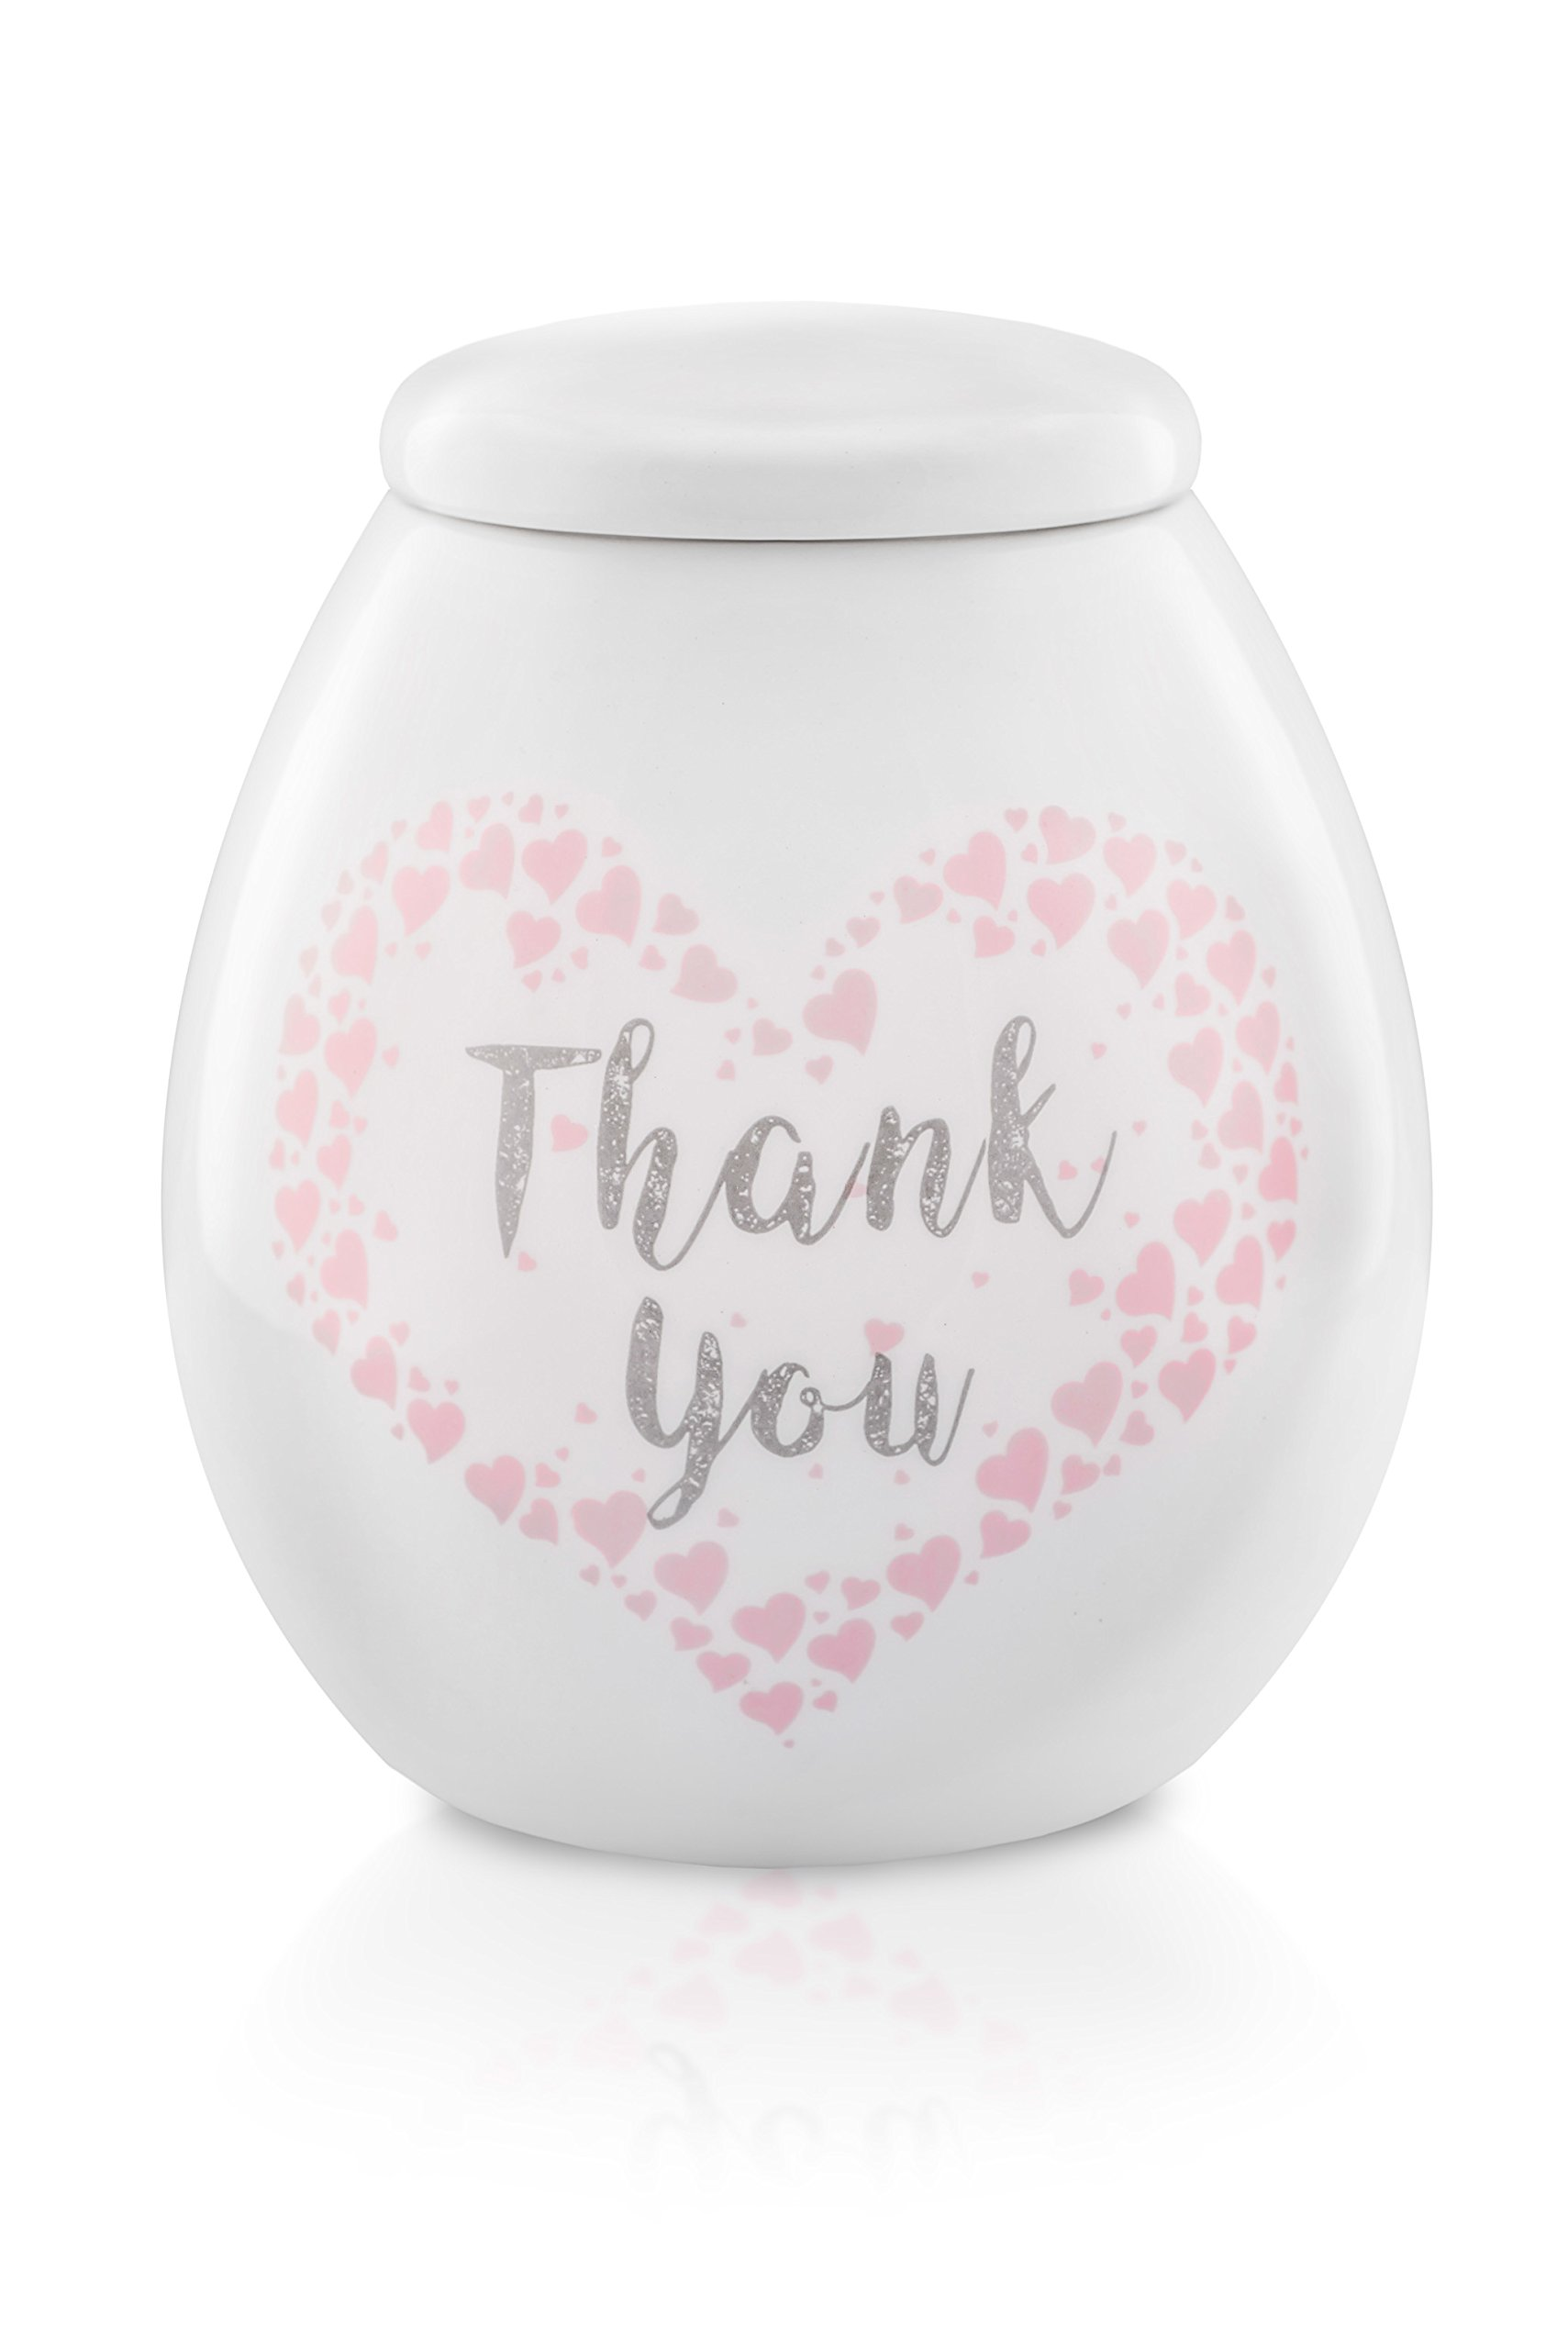 Mysecre Pot of Gratitude. Perfect Gift for Birthday, Anniversary, Mothers Day, Fathers Day. Be Grateful for your Life, Health, Family, for your Children, Parents, Friends. Tell it to Them!